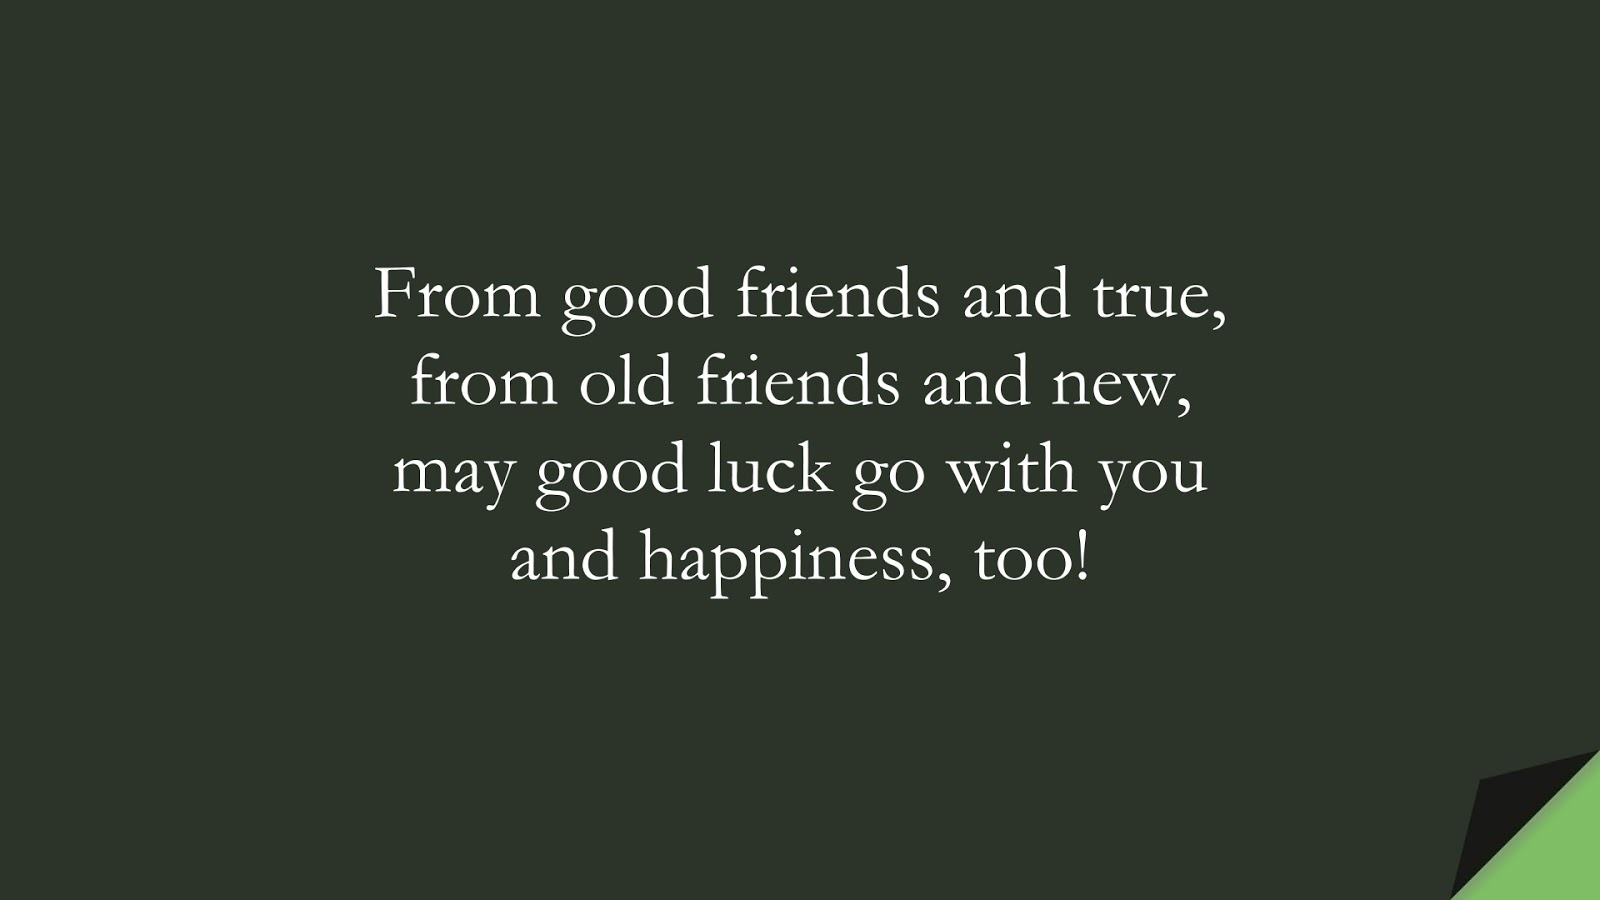 From good friends and true, from old friends and new, may good luck go with you and happiness, too!FALSE